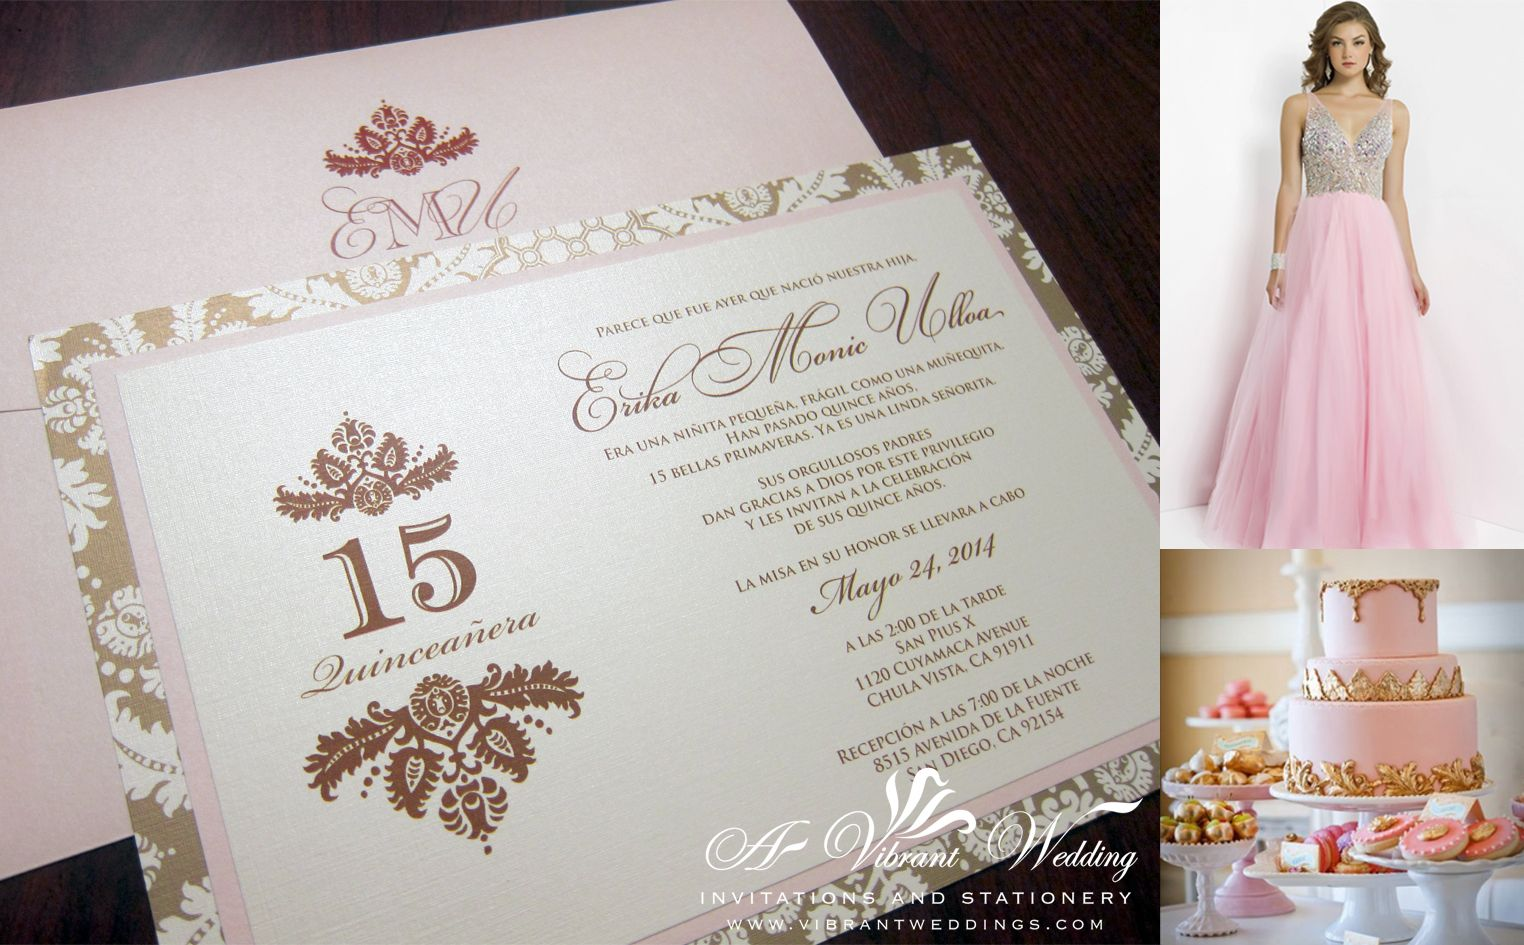 Quinceanera Invitation Cards Gallery Photos | my 15 | Pinterest ...